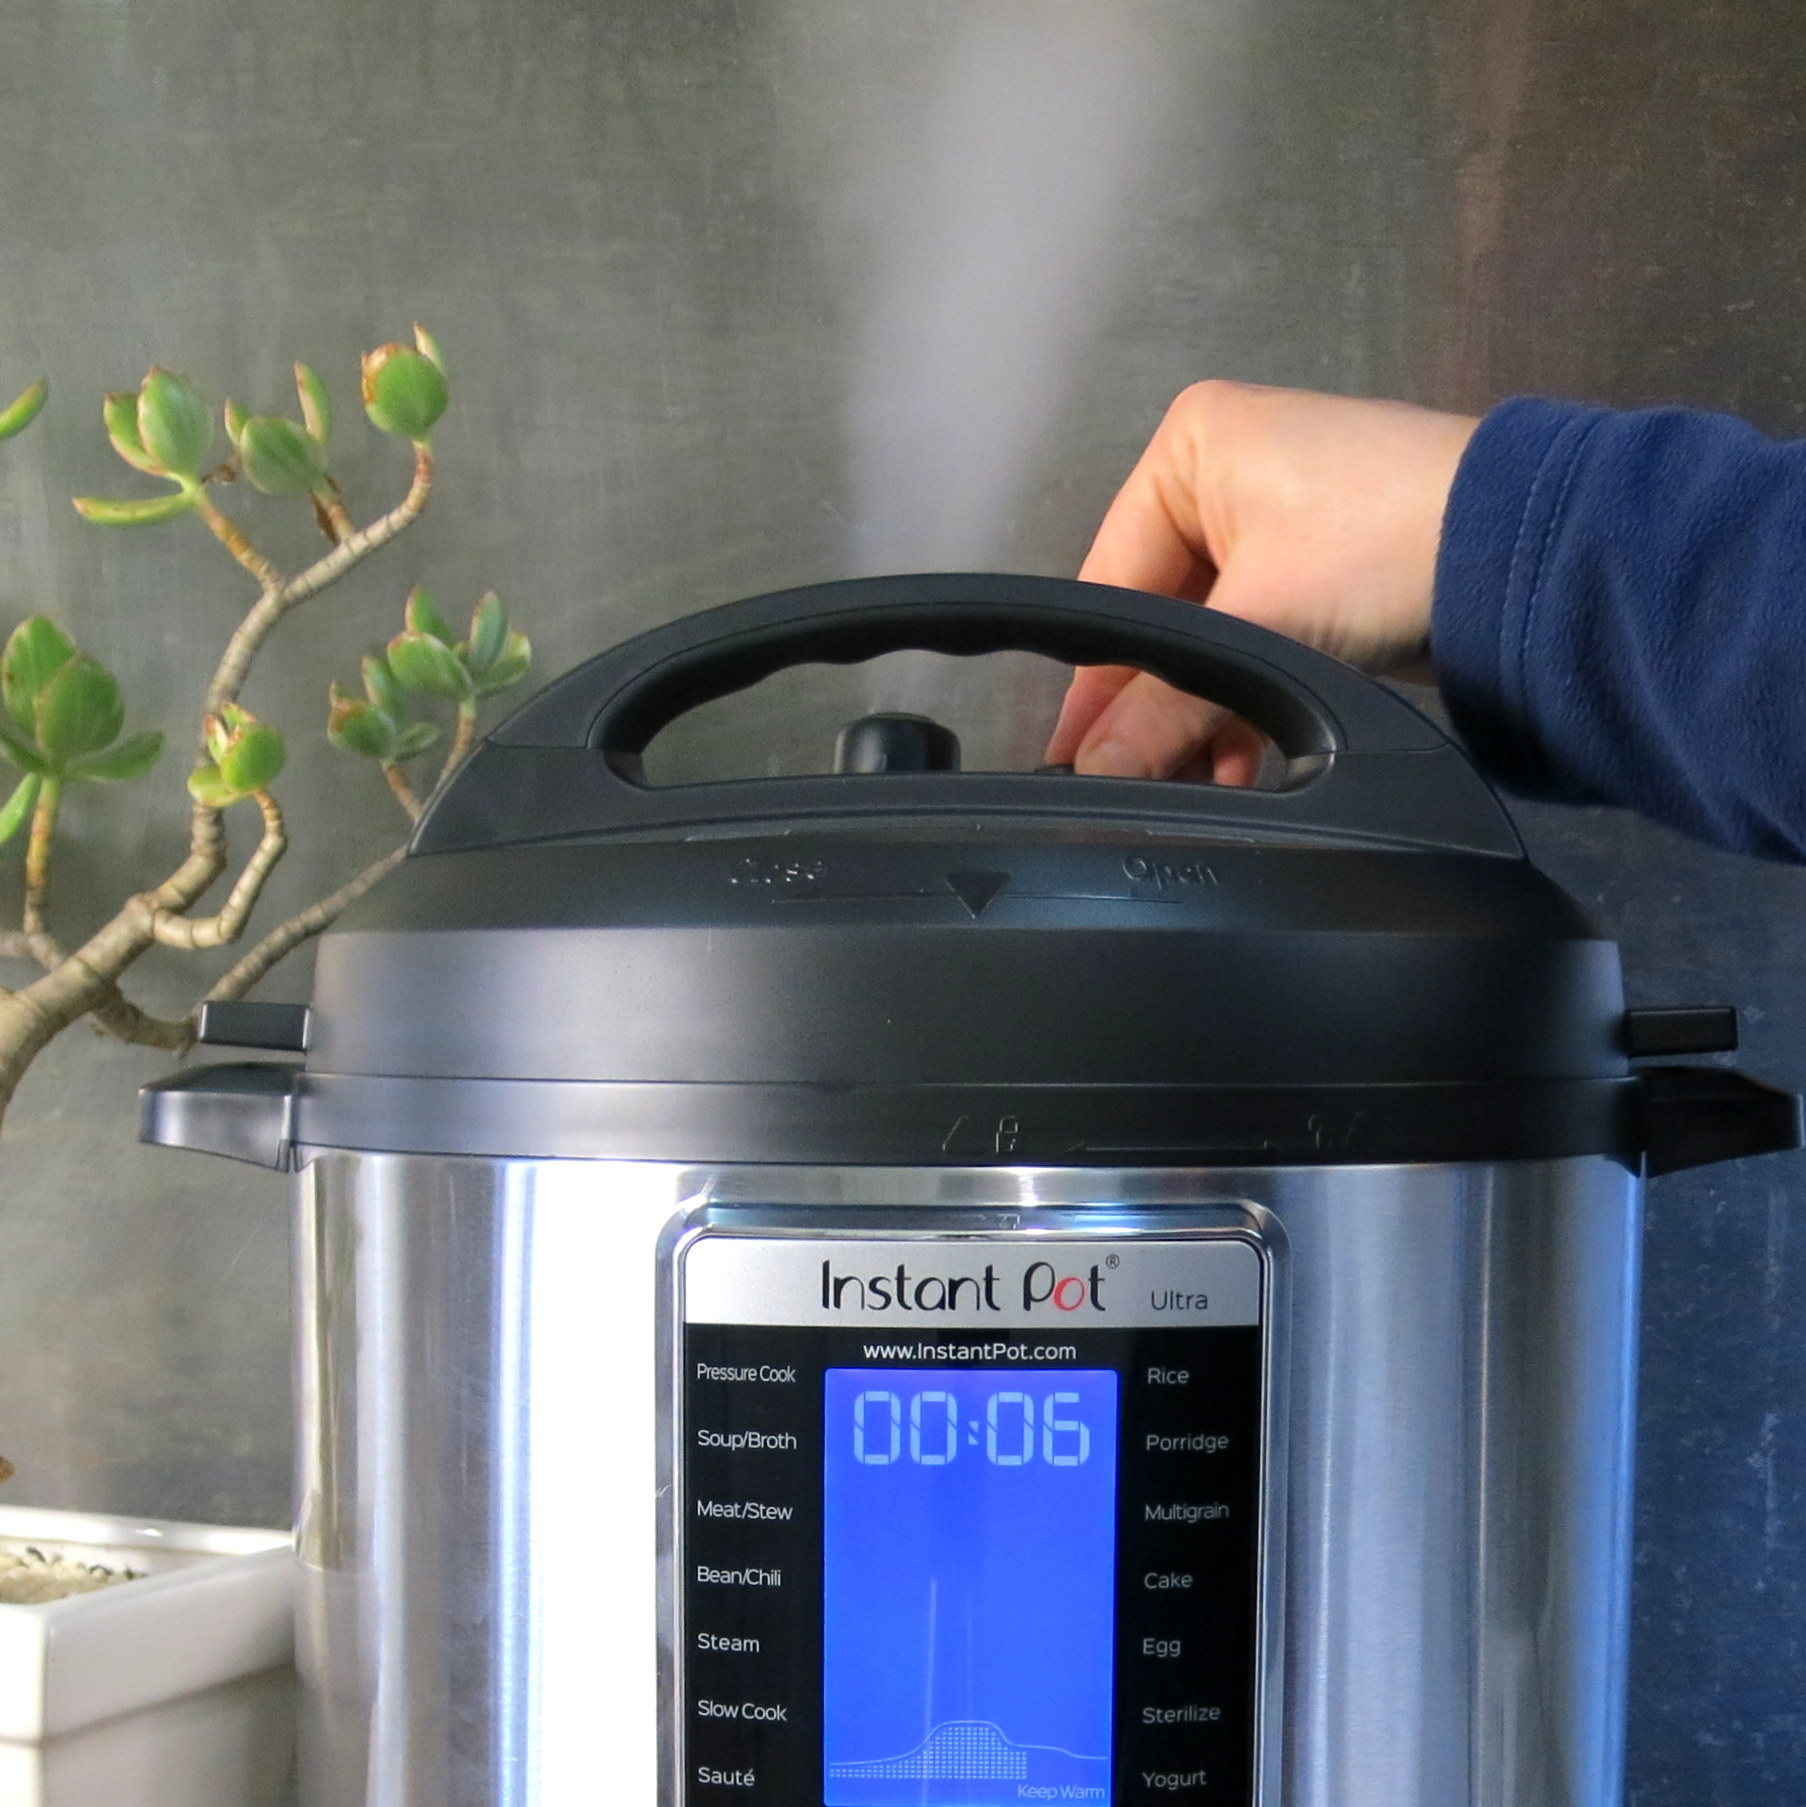 Releasing Pressure with button - Instant Pot ULTRA